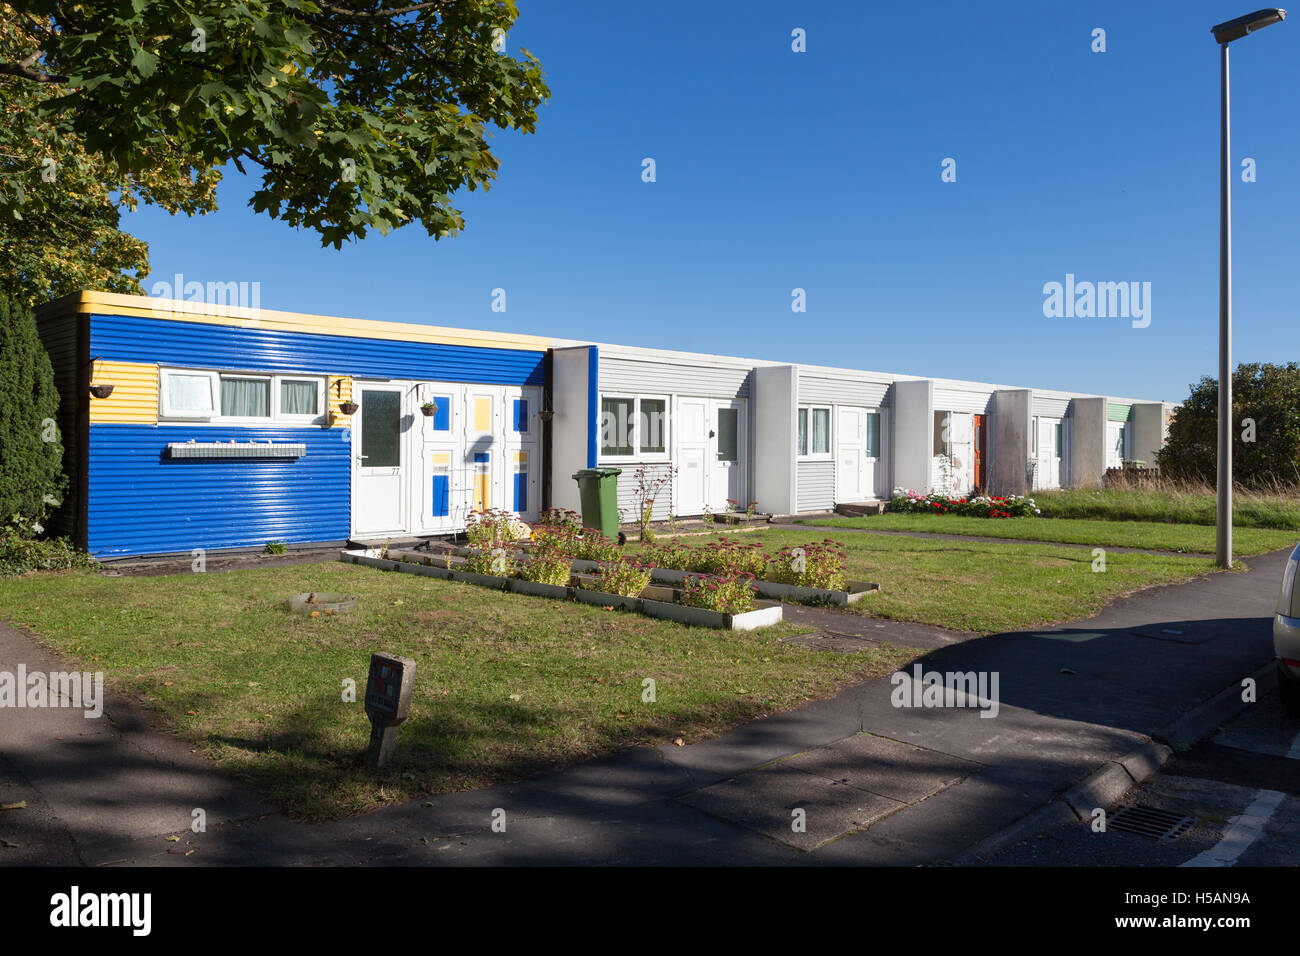 Built between 1972 and 1977, Netherfield was one of the first rental housing grid squares in Milton Keynes to be Stock Photo